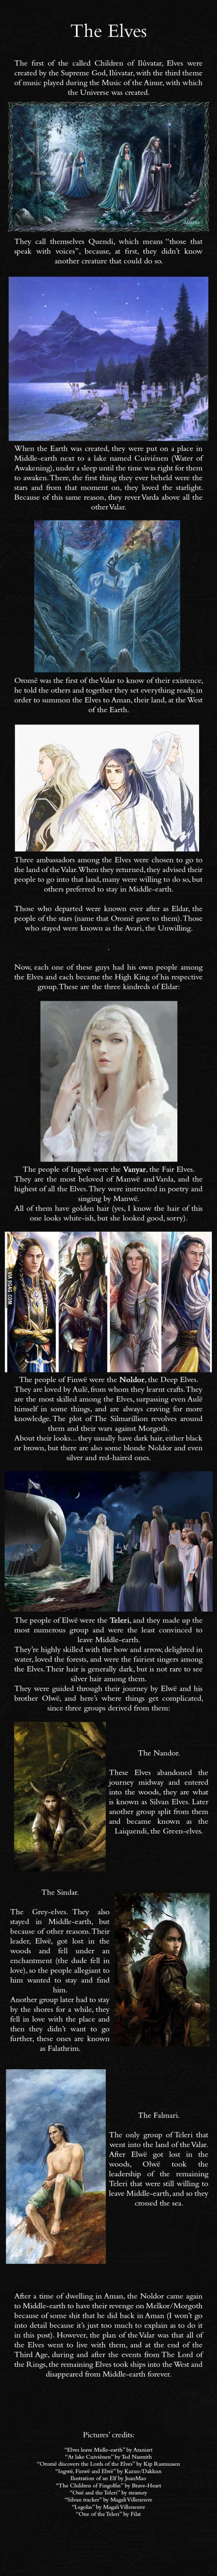 The Elves - J.R.R. Mythology